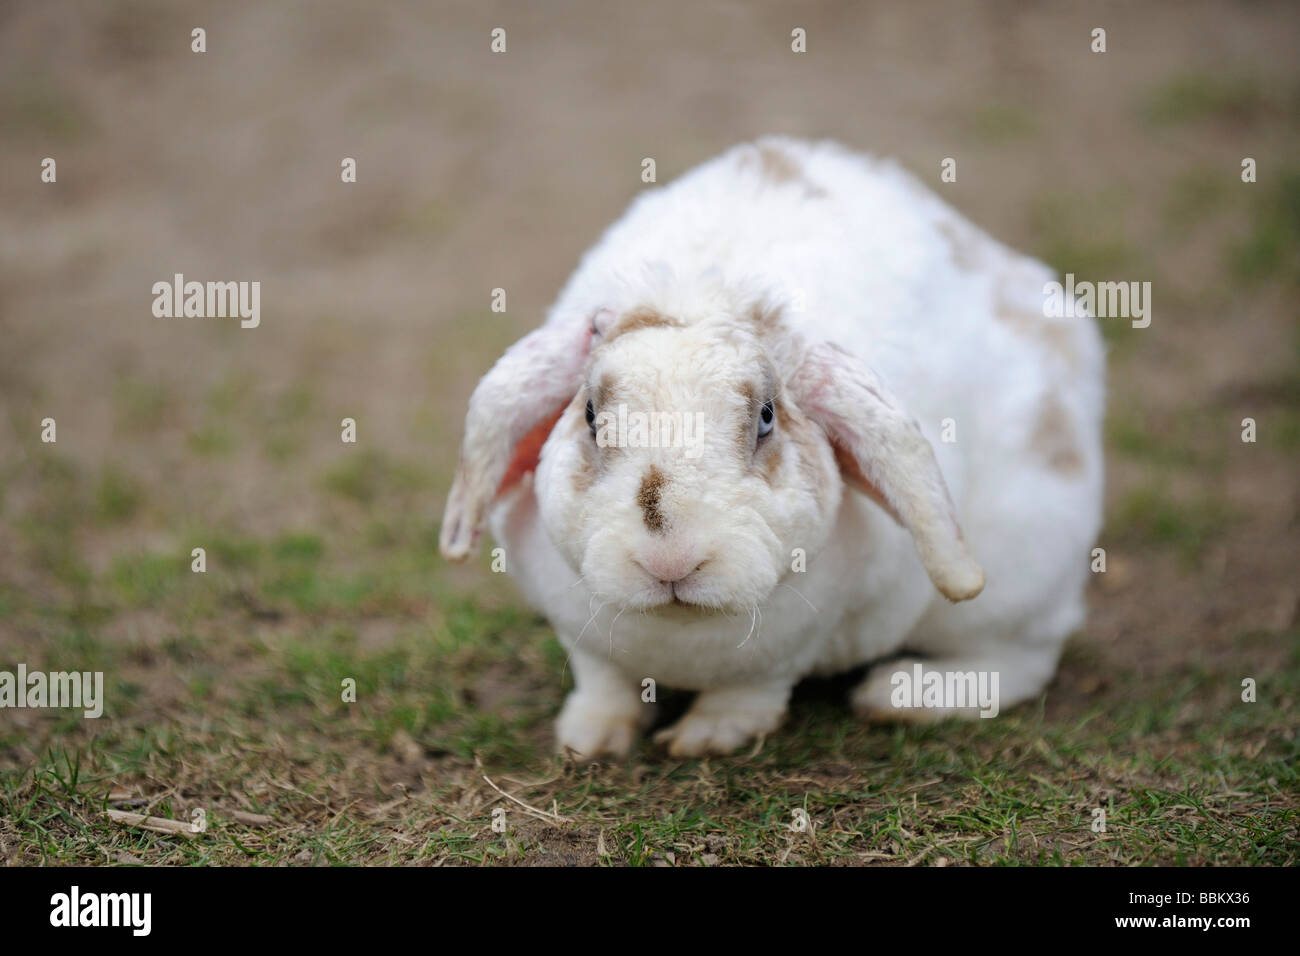 Domestic rabbit with floppy ears sitting on a meadow - Stock Image